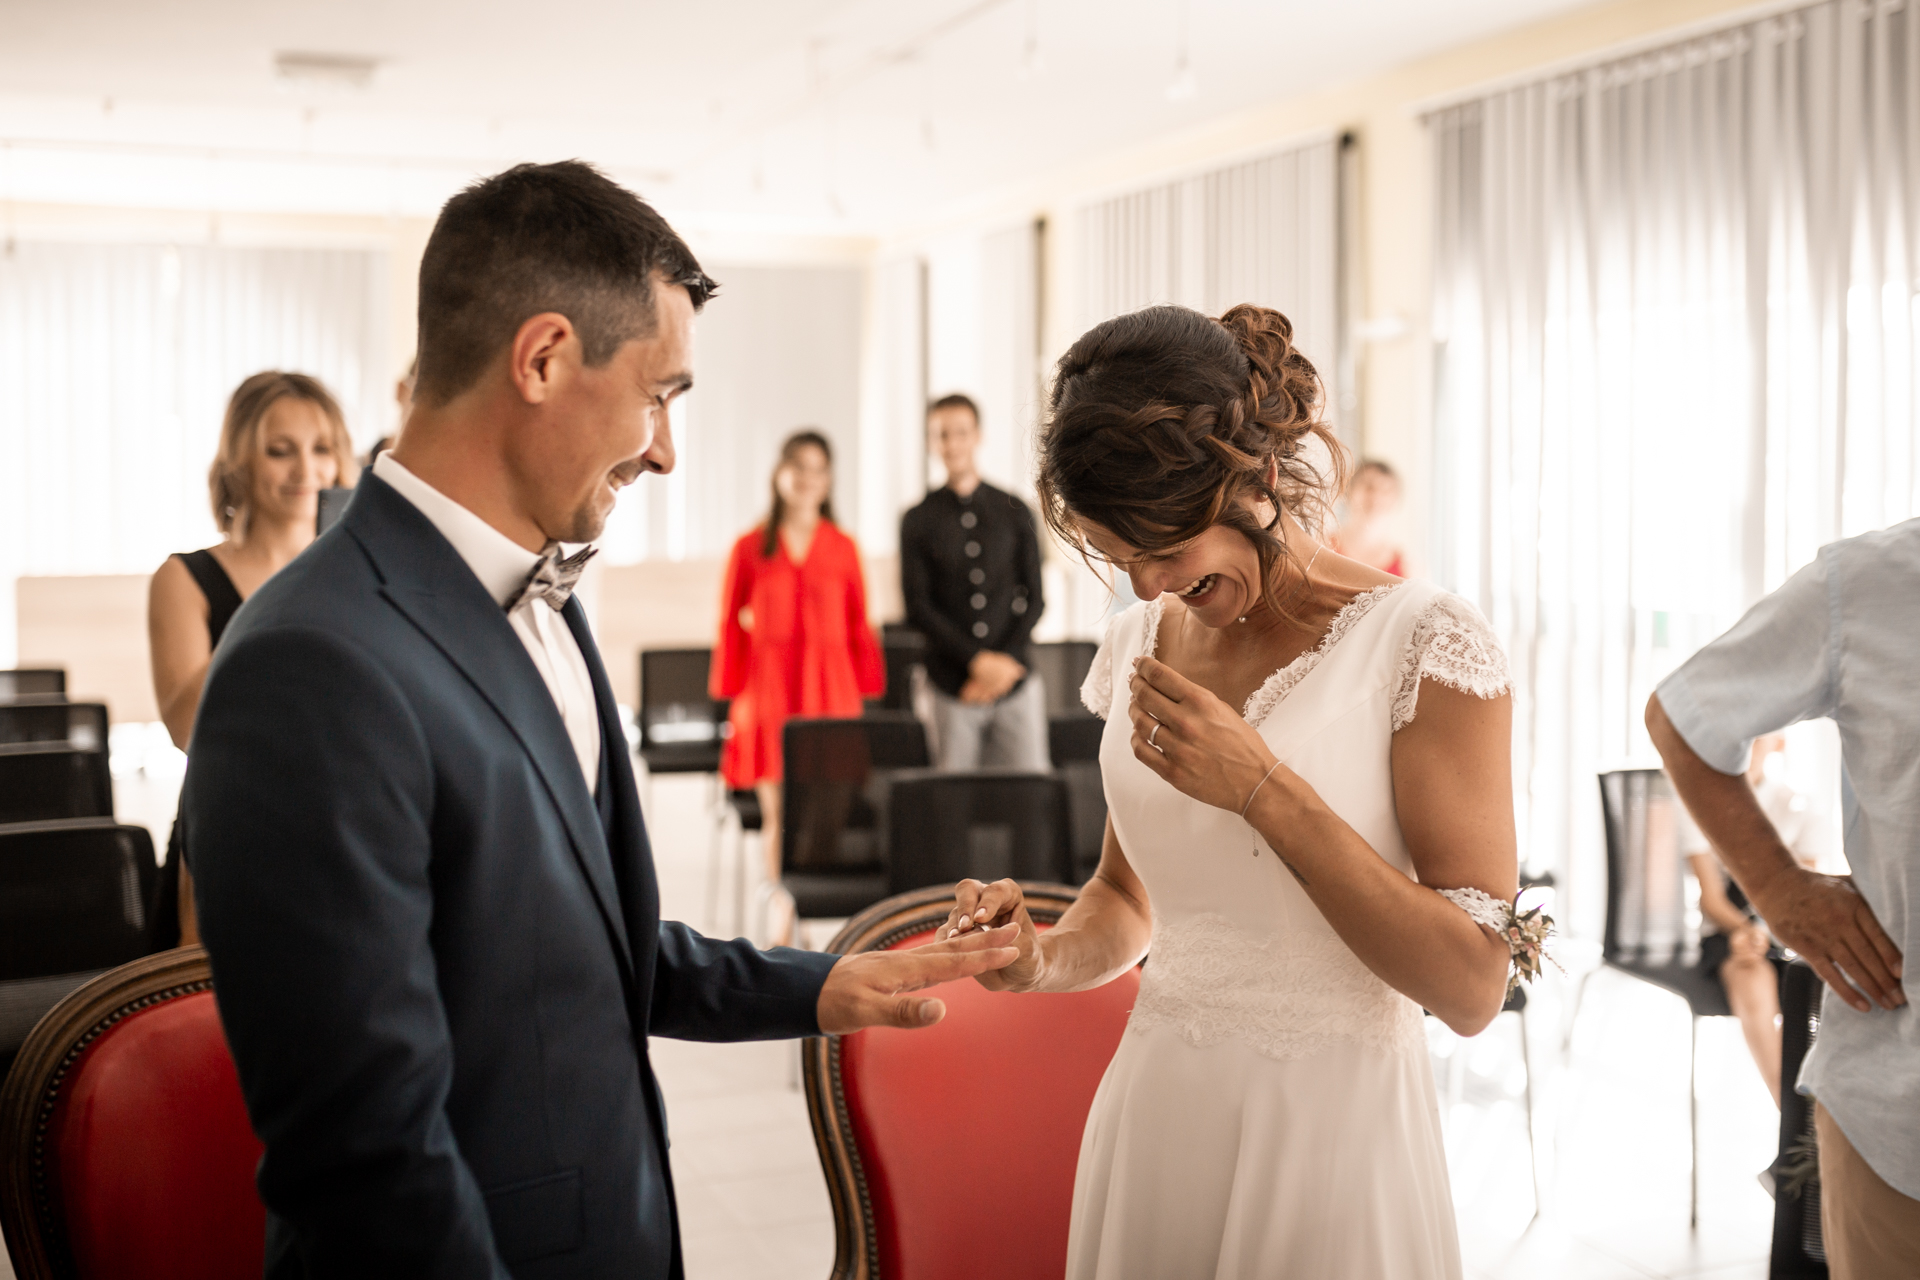 Town Hall Lescure, Tarn, France Wedding Image | The bride was really nervous at the ring moment that she started to give him the wrong hand